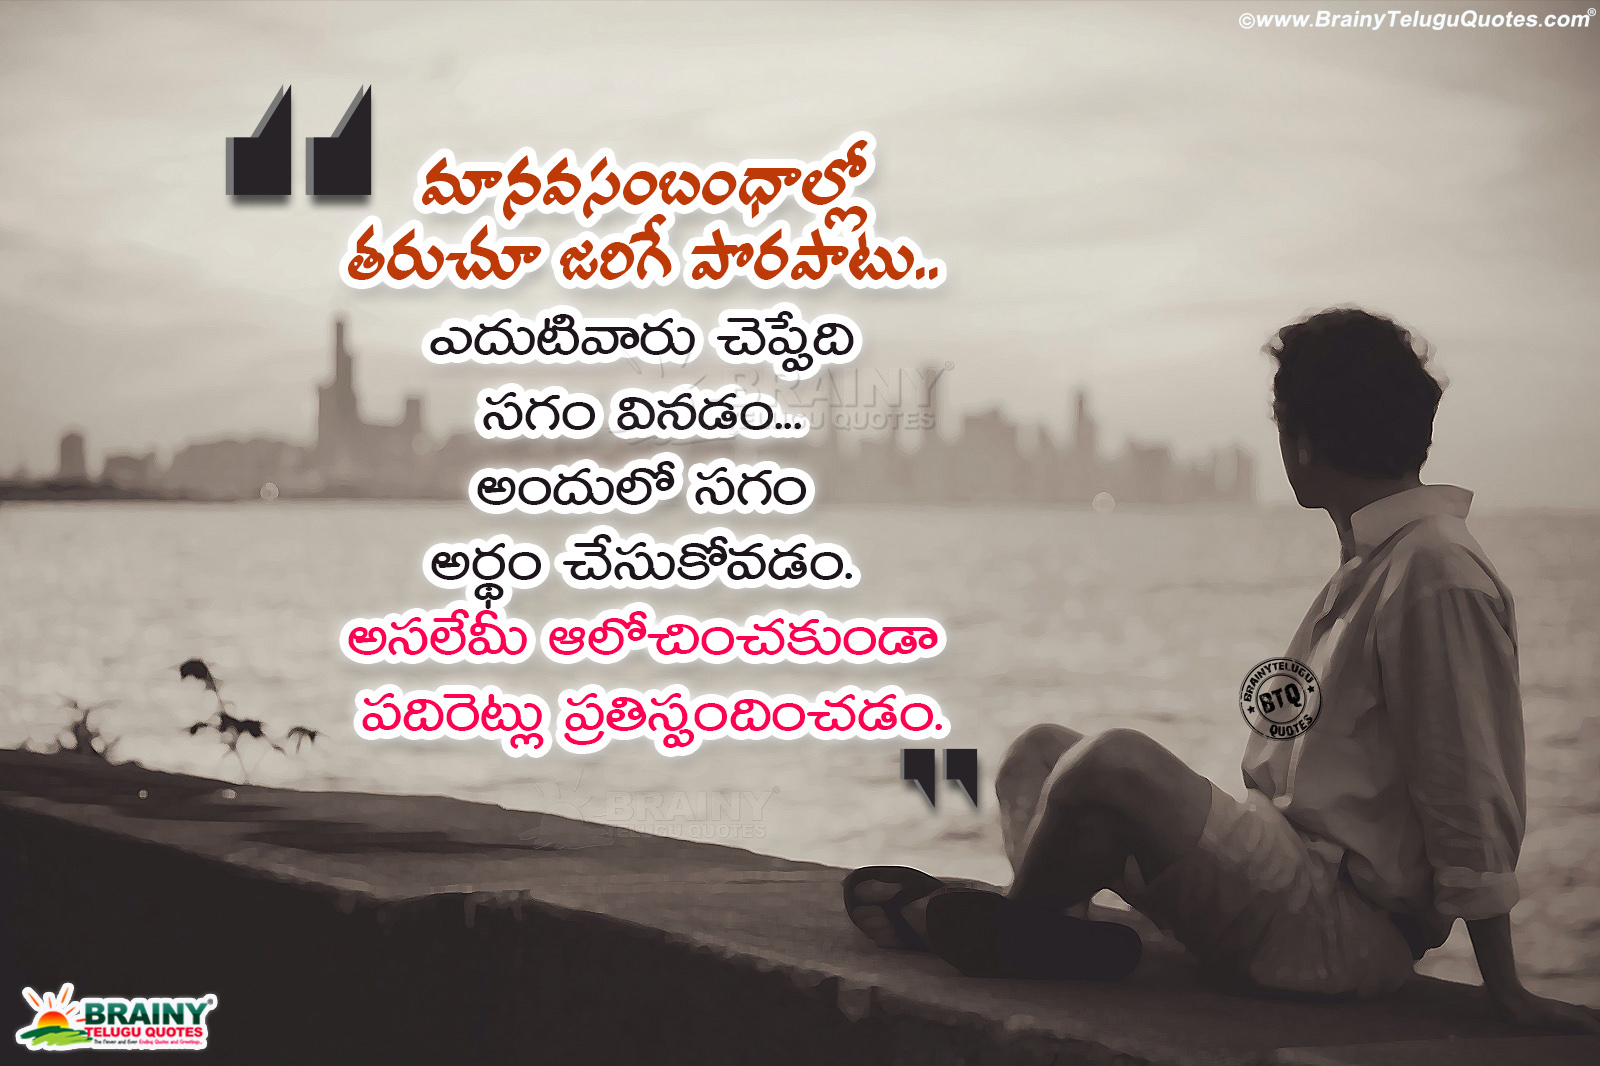 Family Quotes That Will Improve Your Relationships Fast Brainyteluguquotes Comtelugu Quotes English Quotes Hindi Quotes Tamil Quotes Greetings